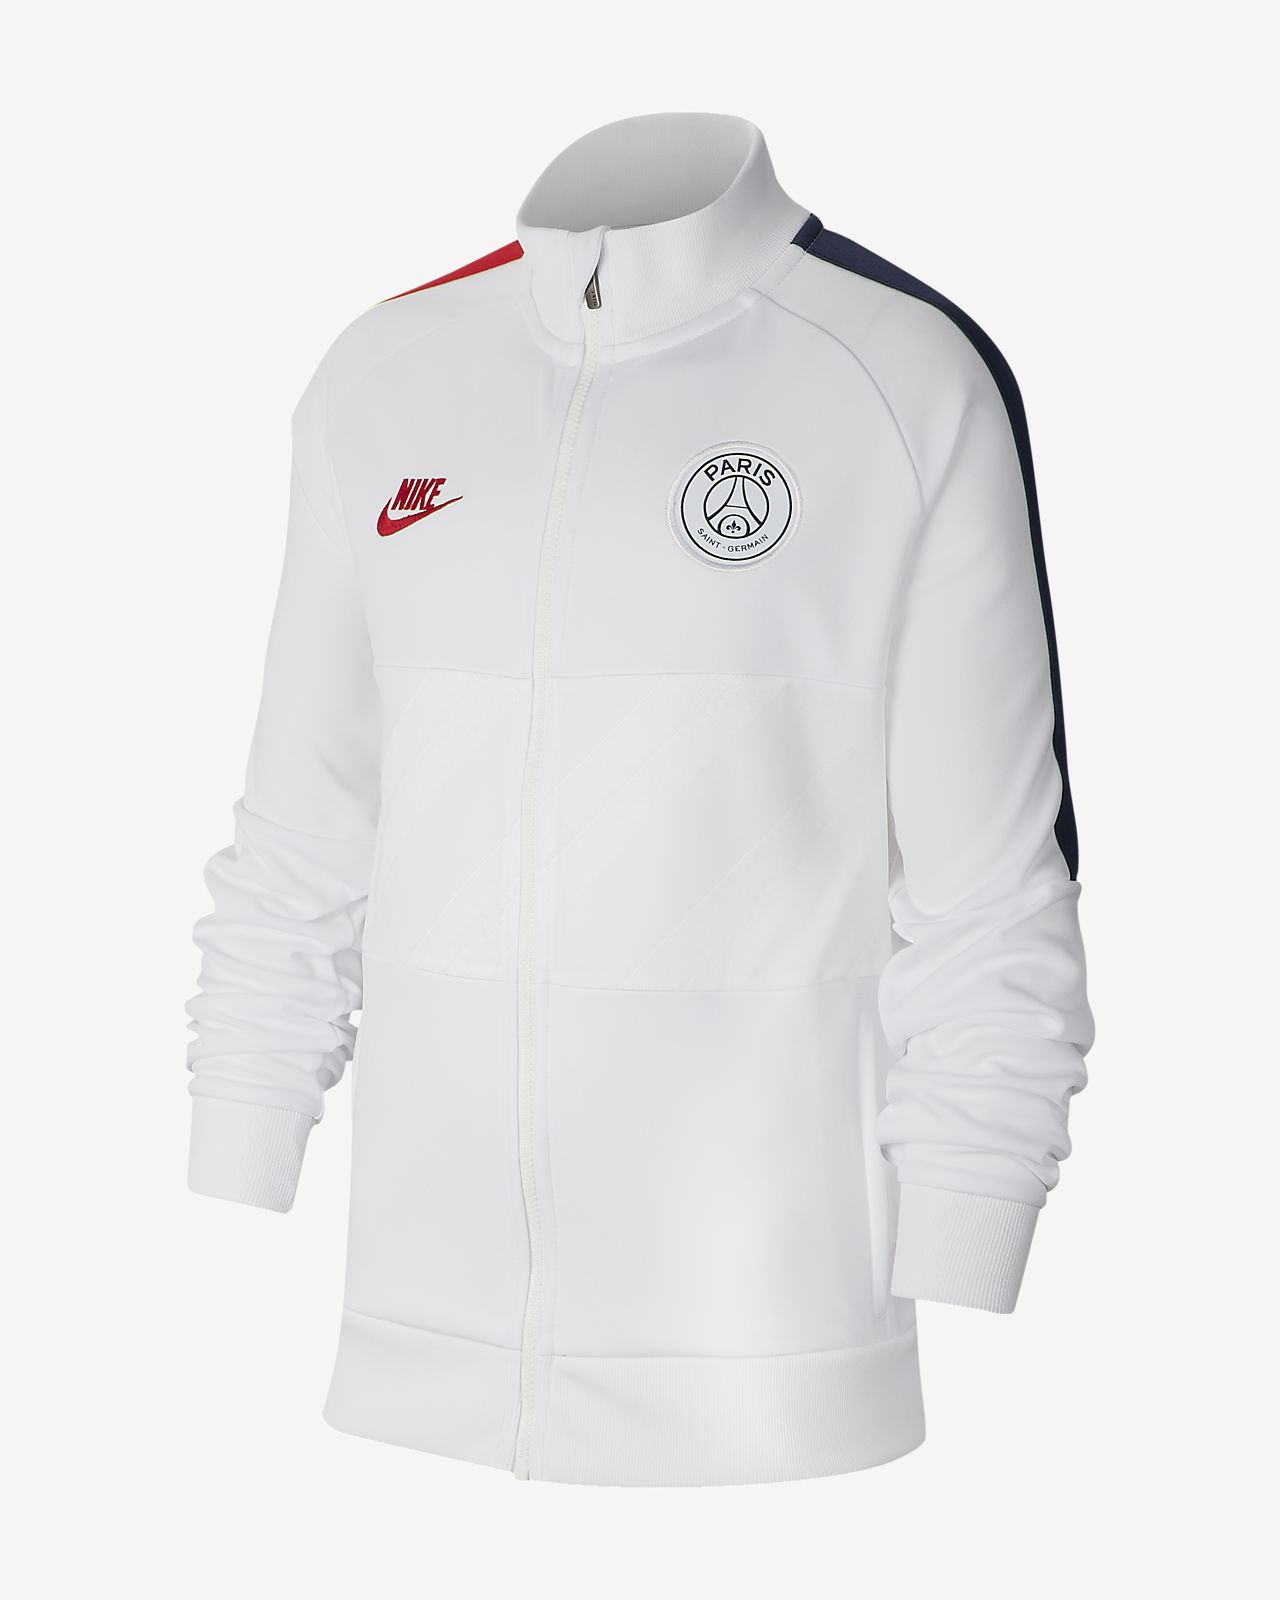 Paris Saint-Germain Kinder-Fußballjacke